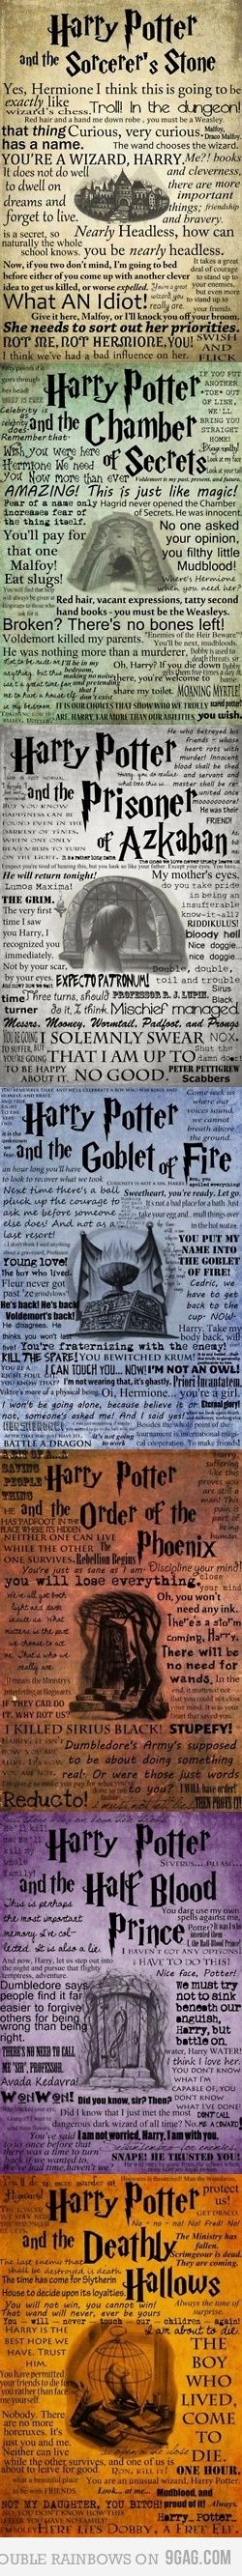 Harry Potter. The best quotes from each book.